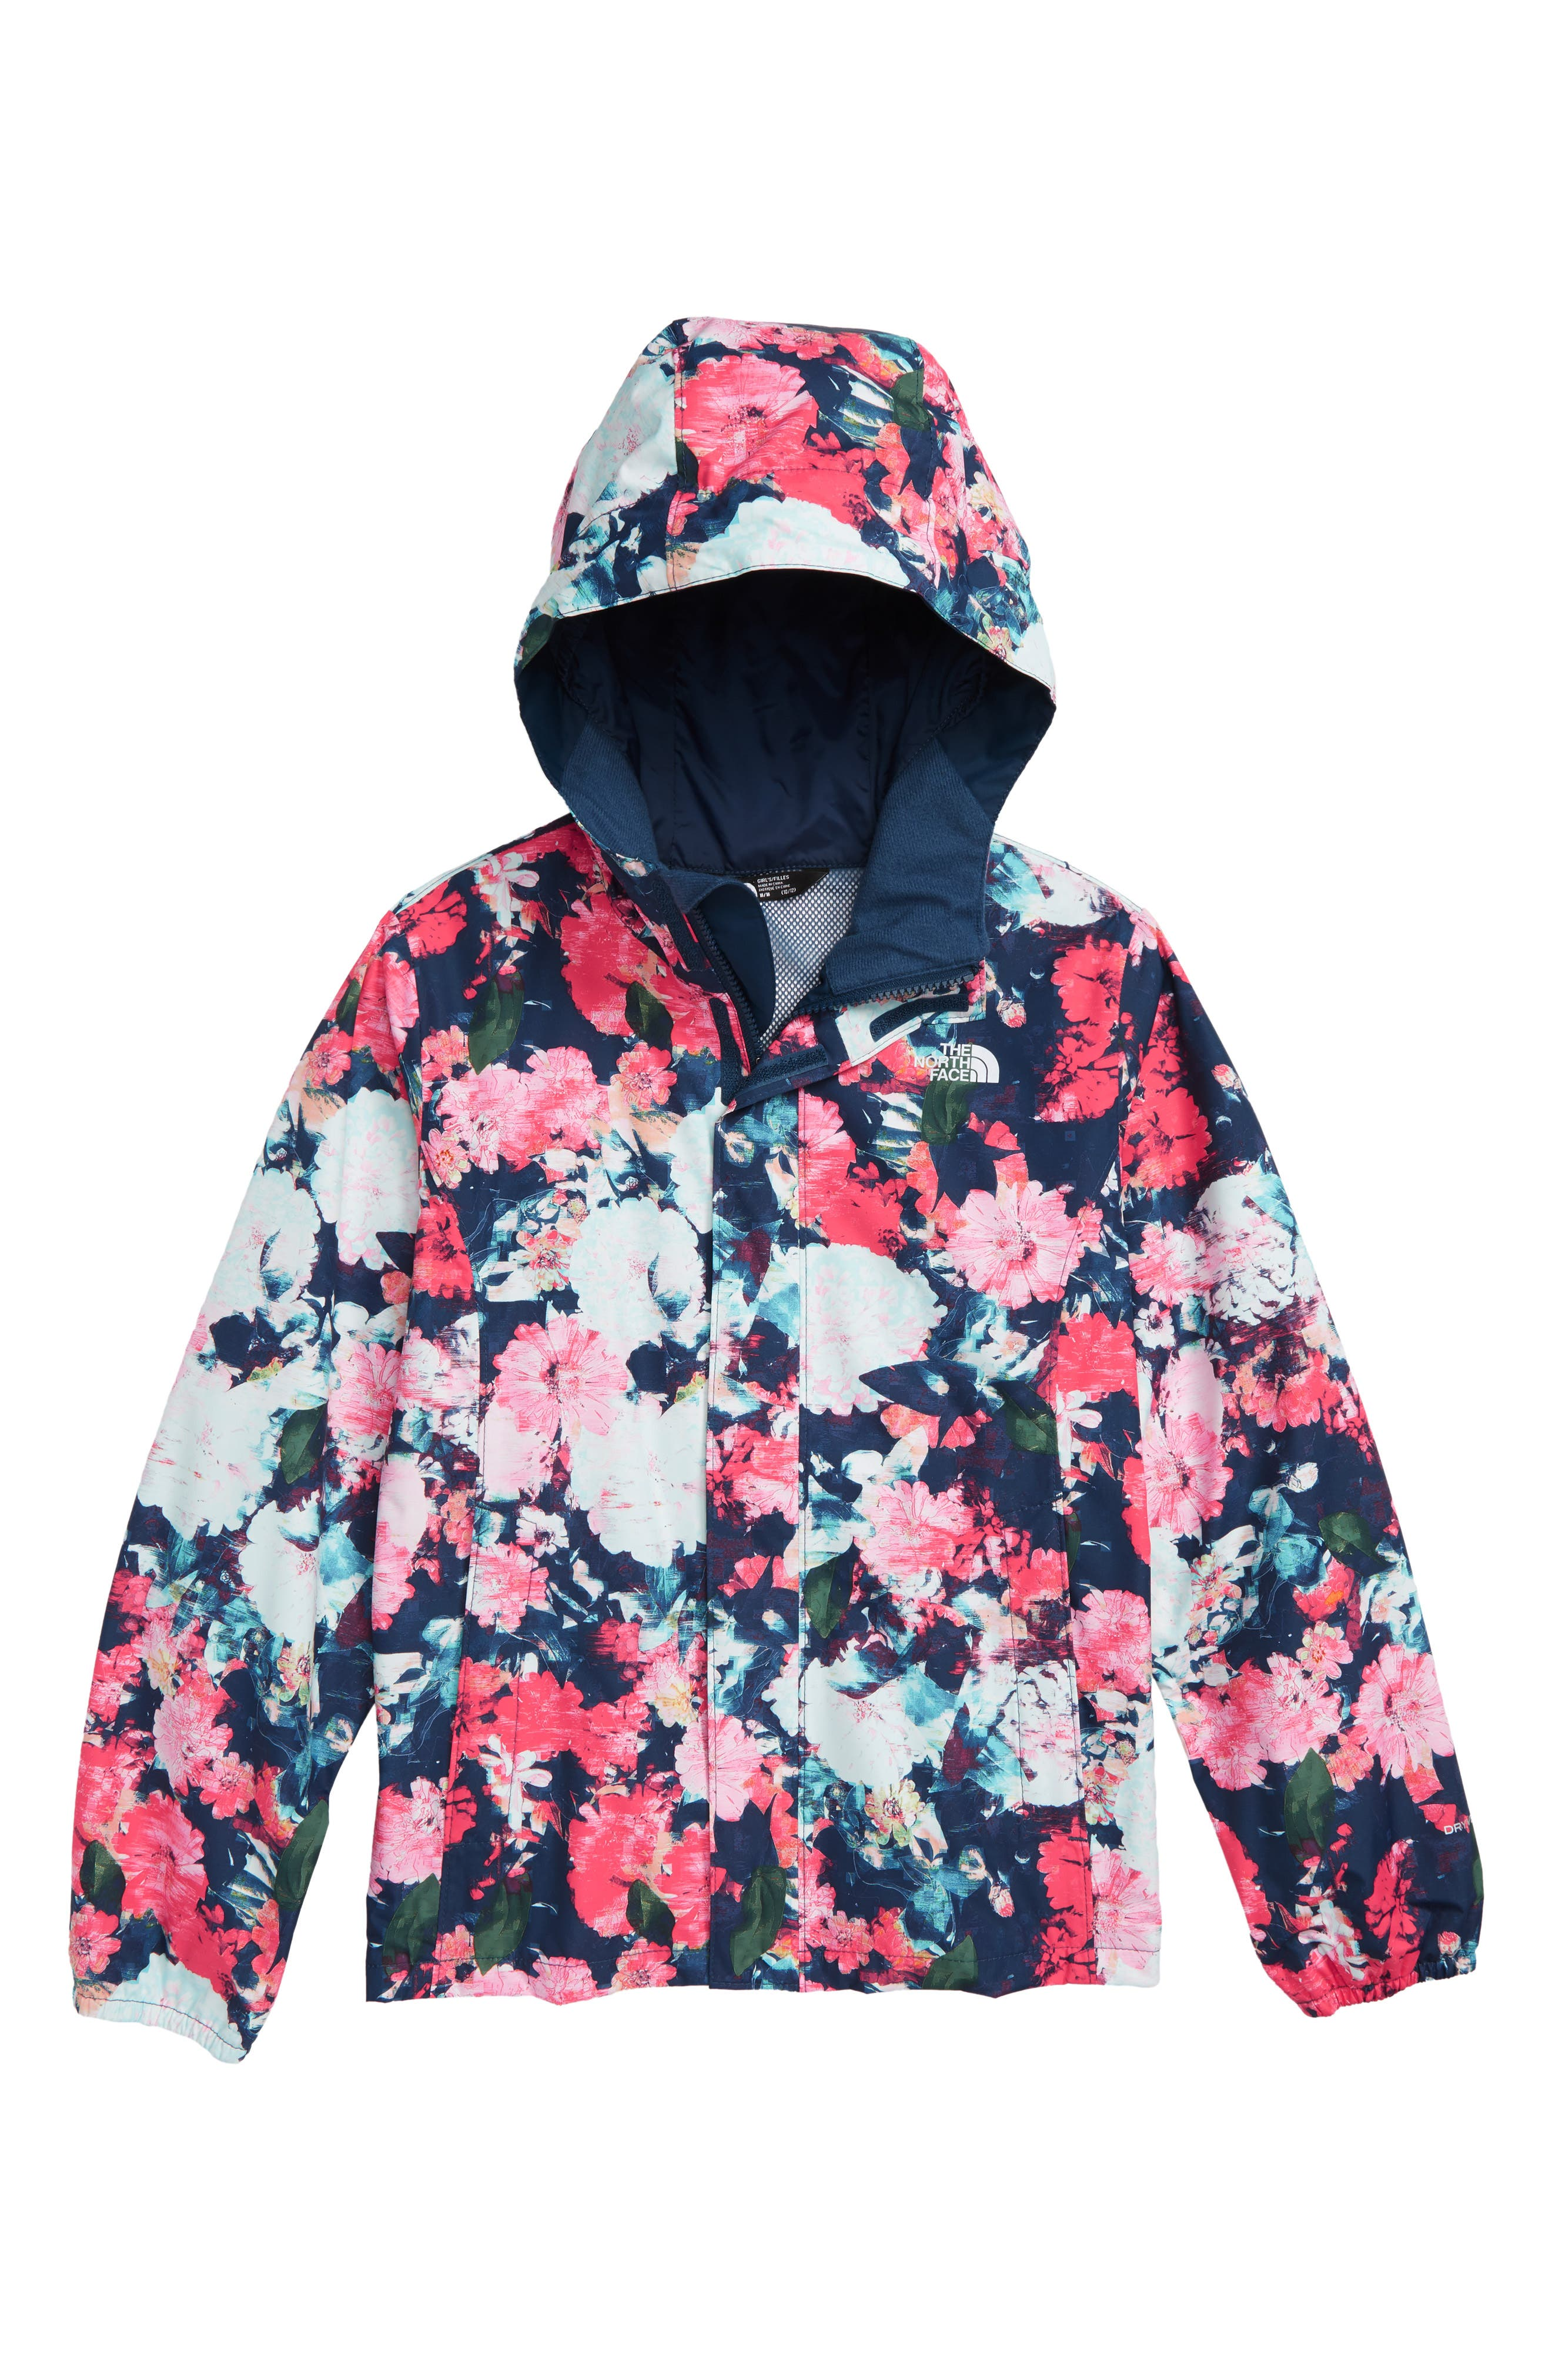 THE NORTH FACE Resolve Reflective Waterproof Jacket, Main, color, ATOMIC PINK DIGI FLORAL PRINT